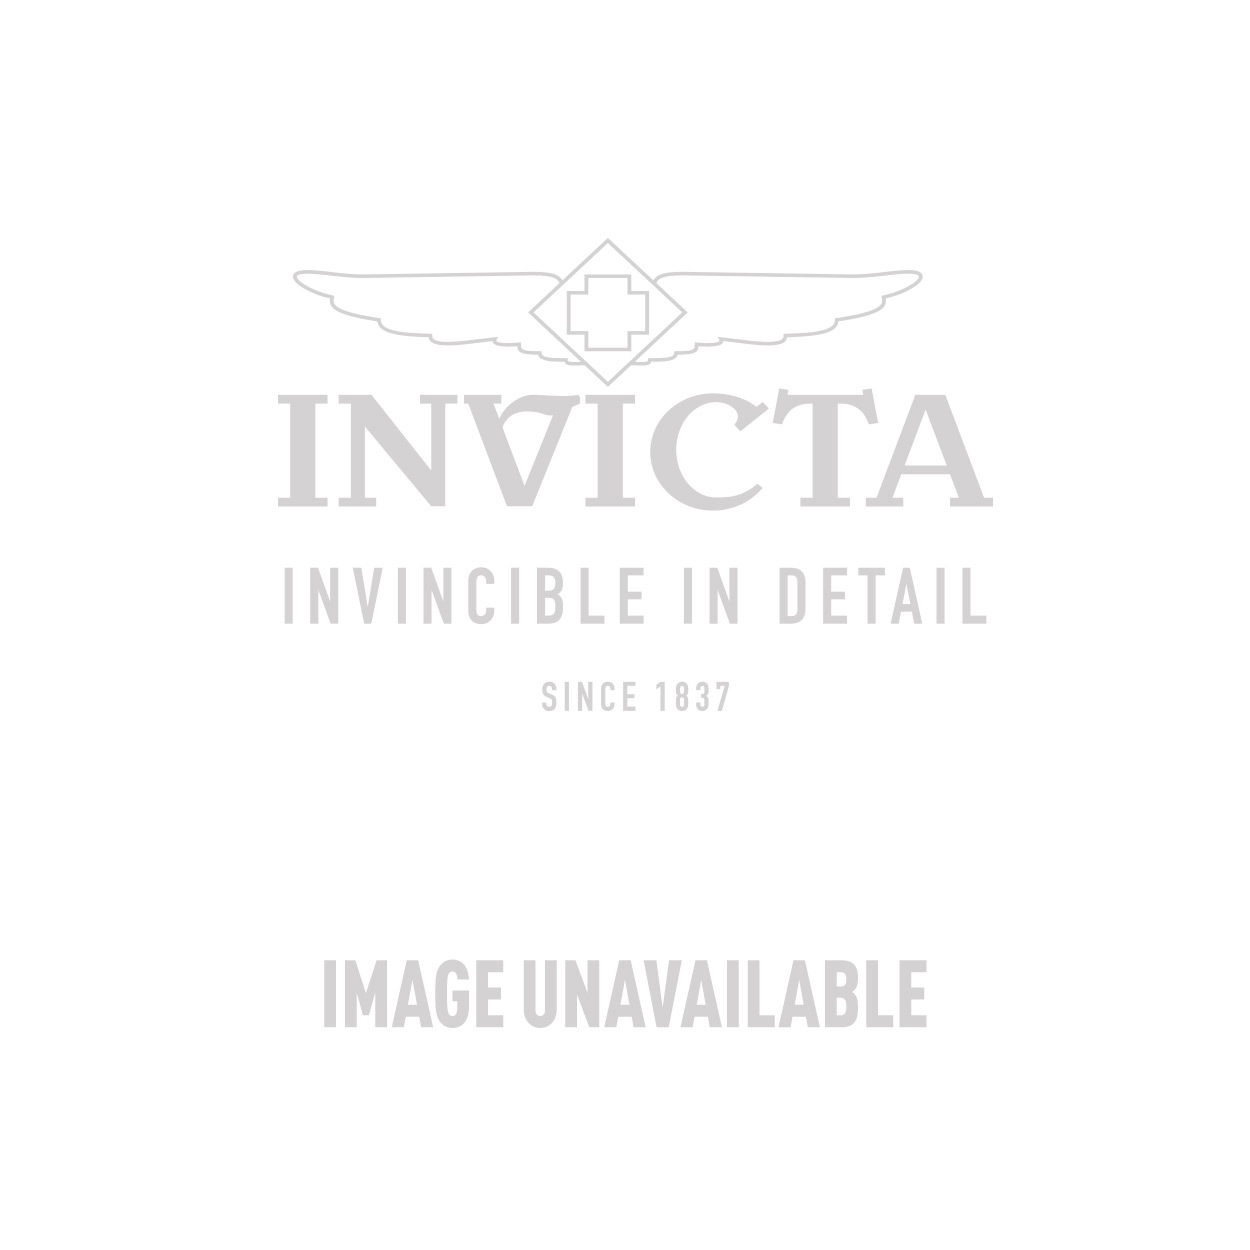 Invicta S. Coifman Swiss Movement Quartz Watch - Gold case with Gold tone Stainless Steel band - Model SC0332